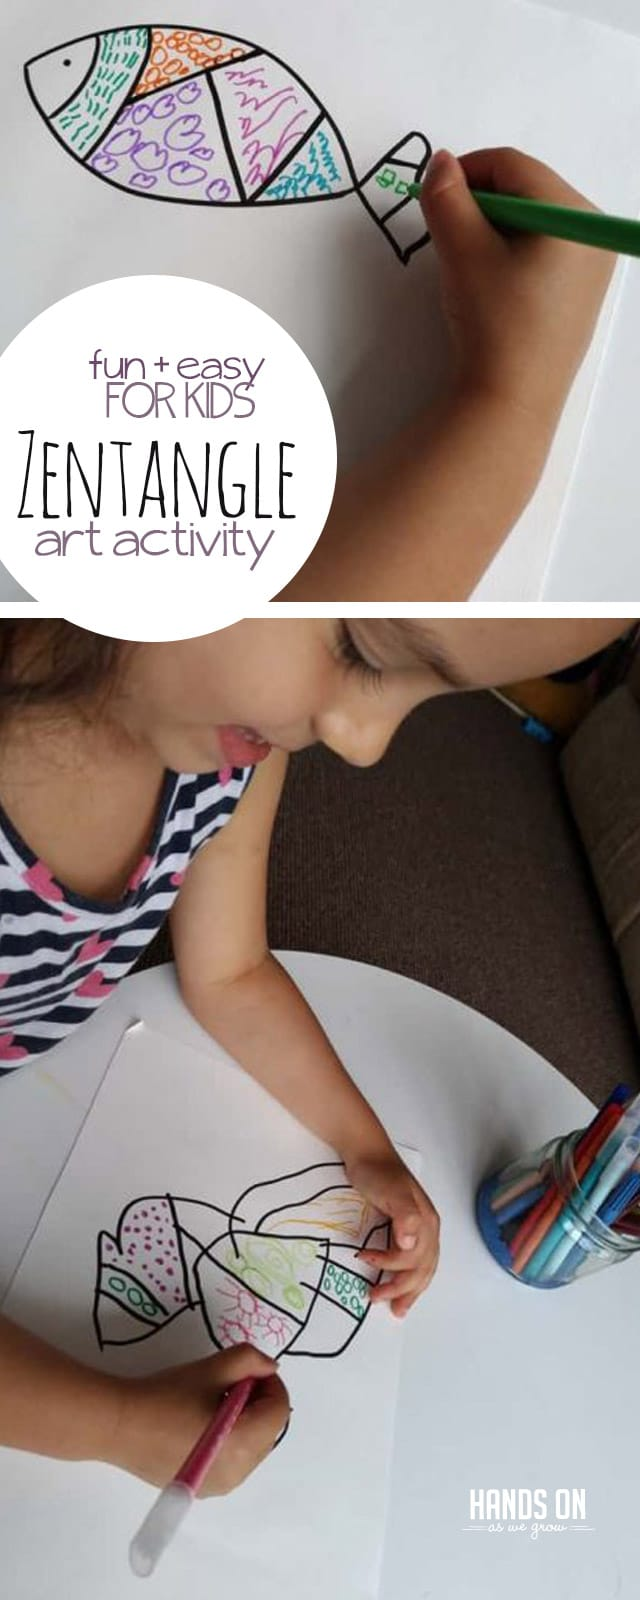 Totally Zen out with Zentangle drawing! This creative and relaxing activity is a perfect way to bond with your kids.